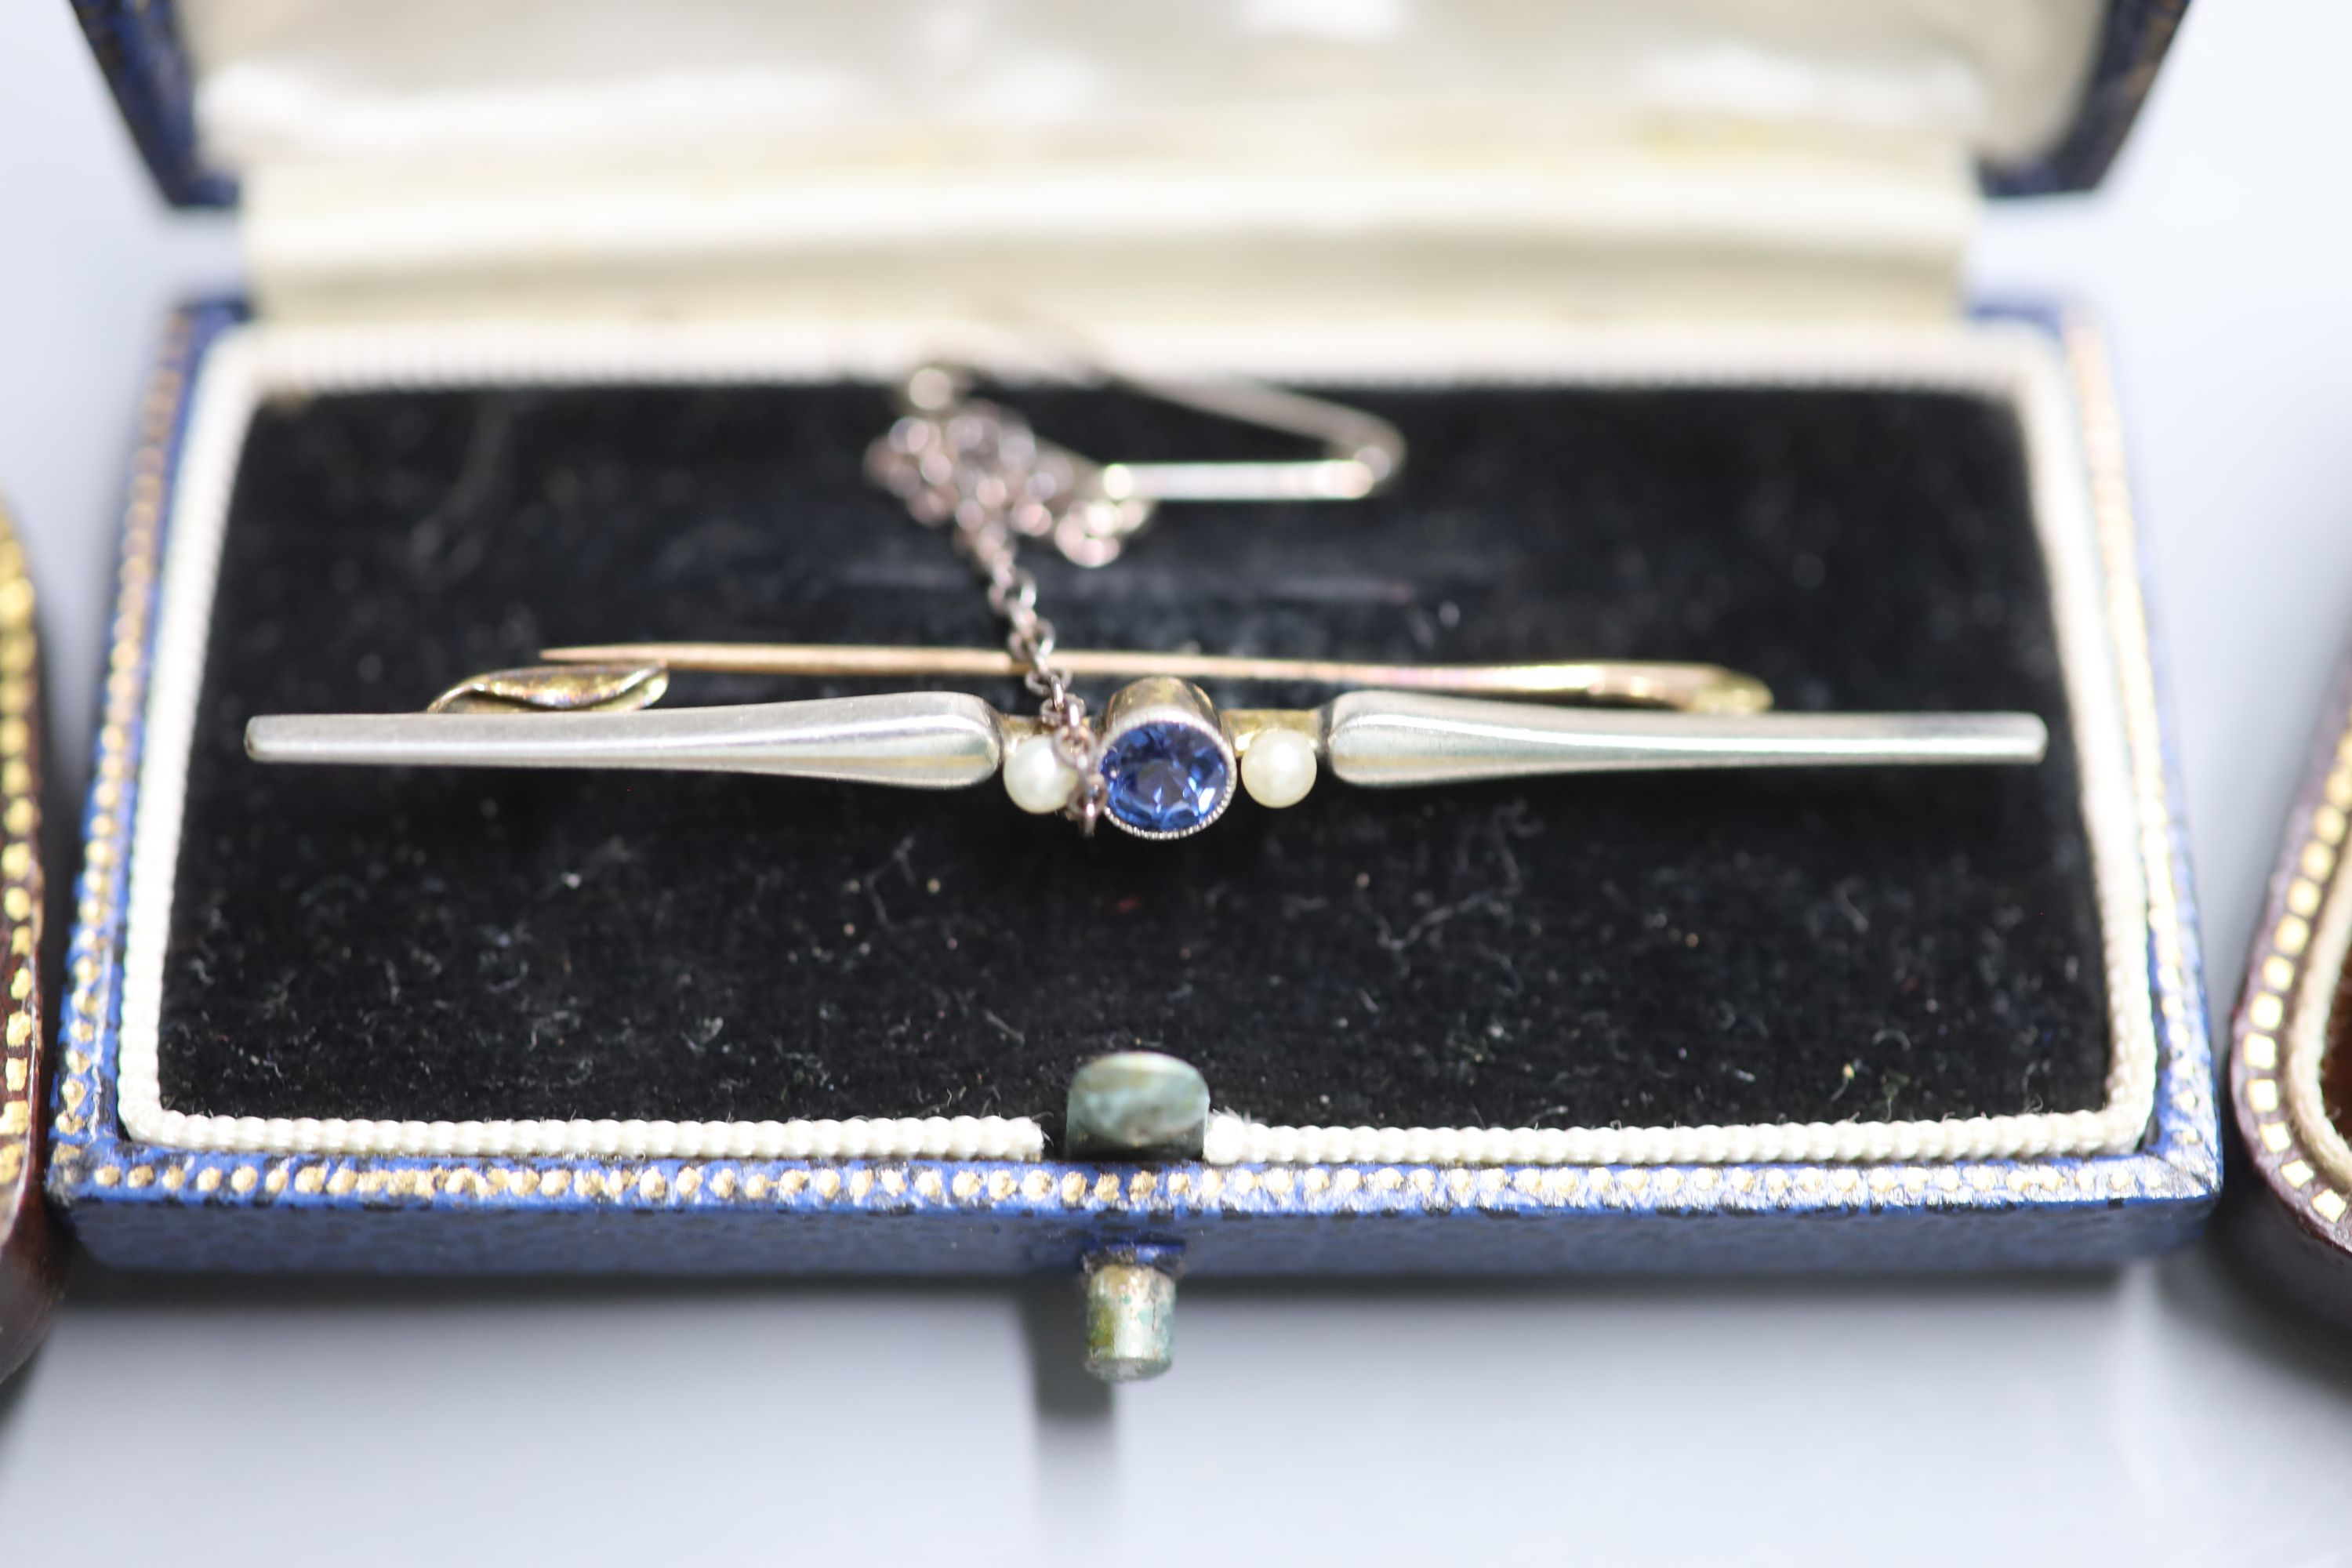 Three assorted Edwardian and later yellow metal bar brooches including a sapphire and seed pearl, - Image 3 of 4